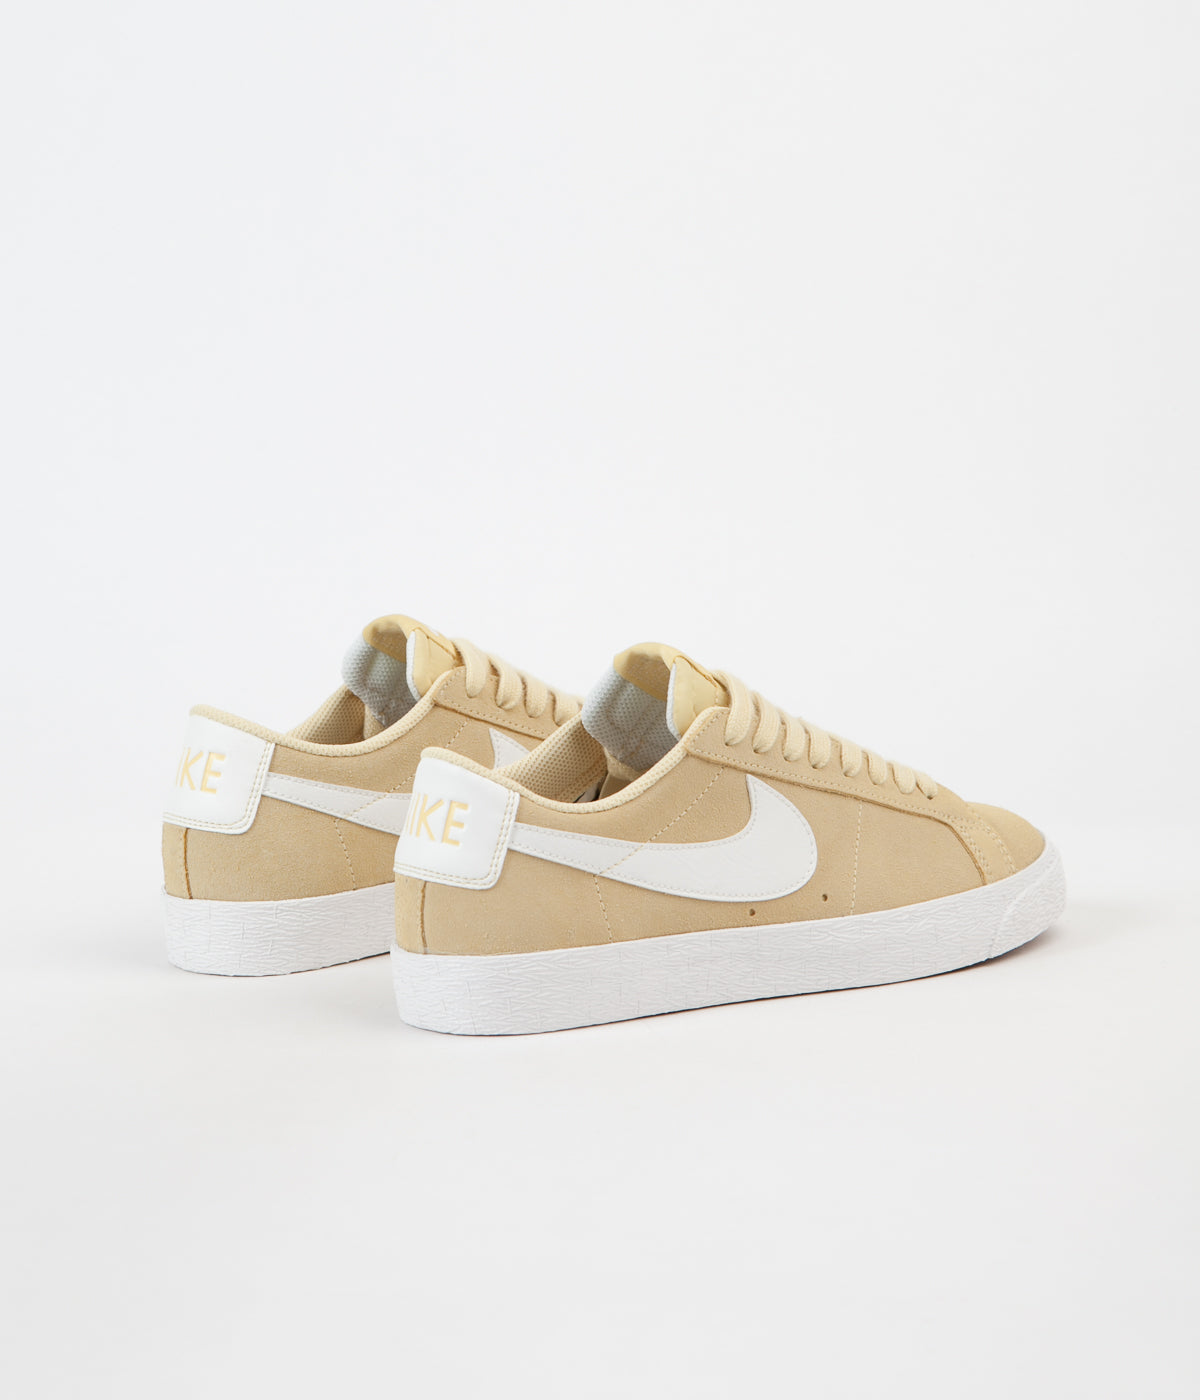 ... Nike SB Blazer Low Shoes - Lemon Wash   Summit White - Summit White ... 1aa262fcdd